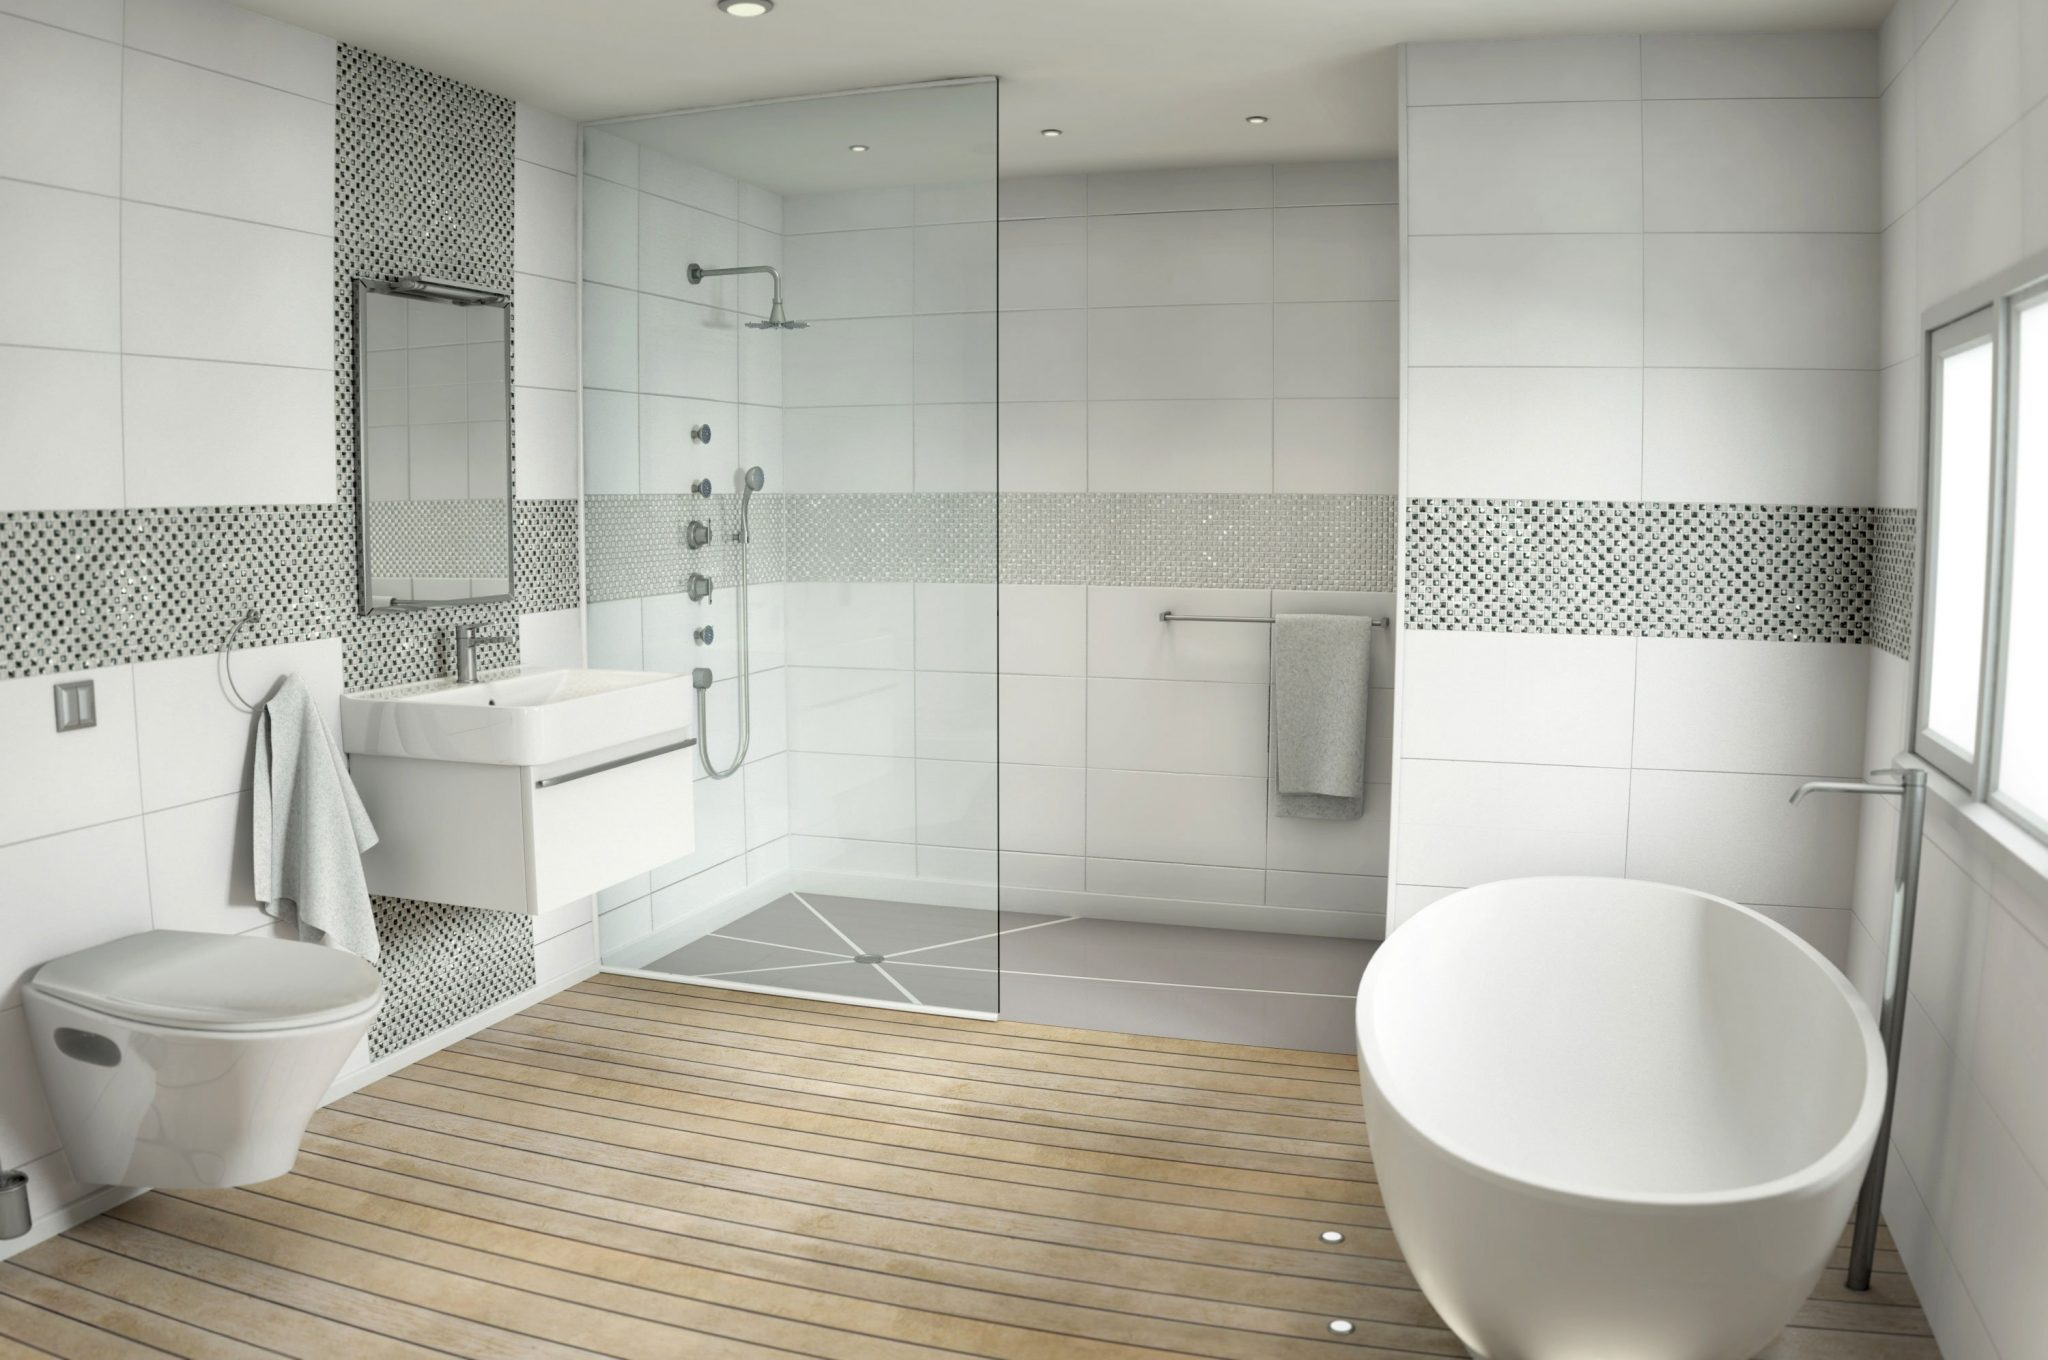 Bathroom Mosaic Tiles | Mosaic Bathroom Tiles | Mosaic Village